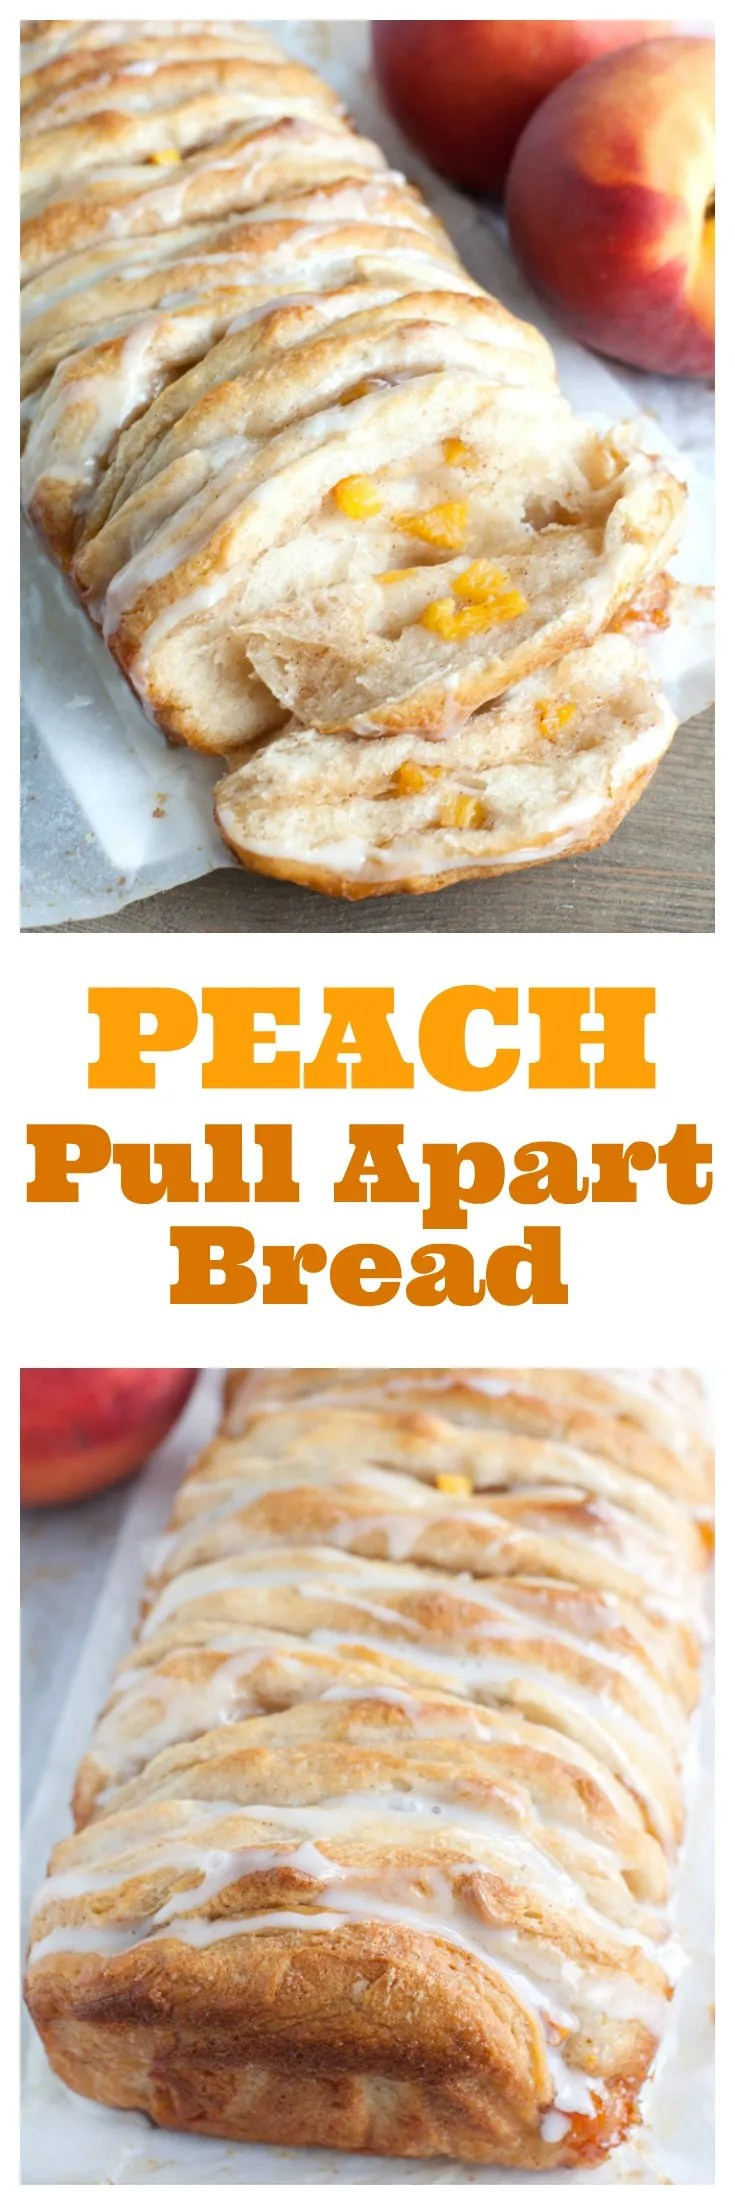 peach pull apart bread PIN